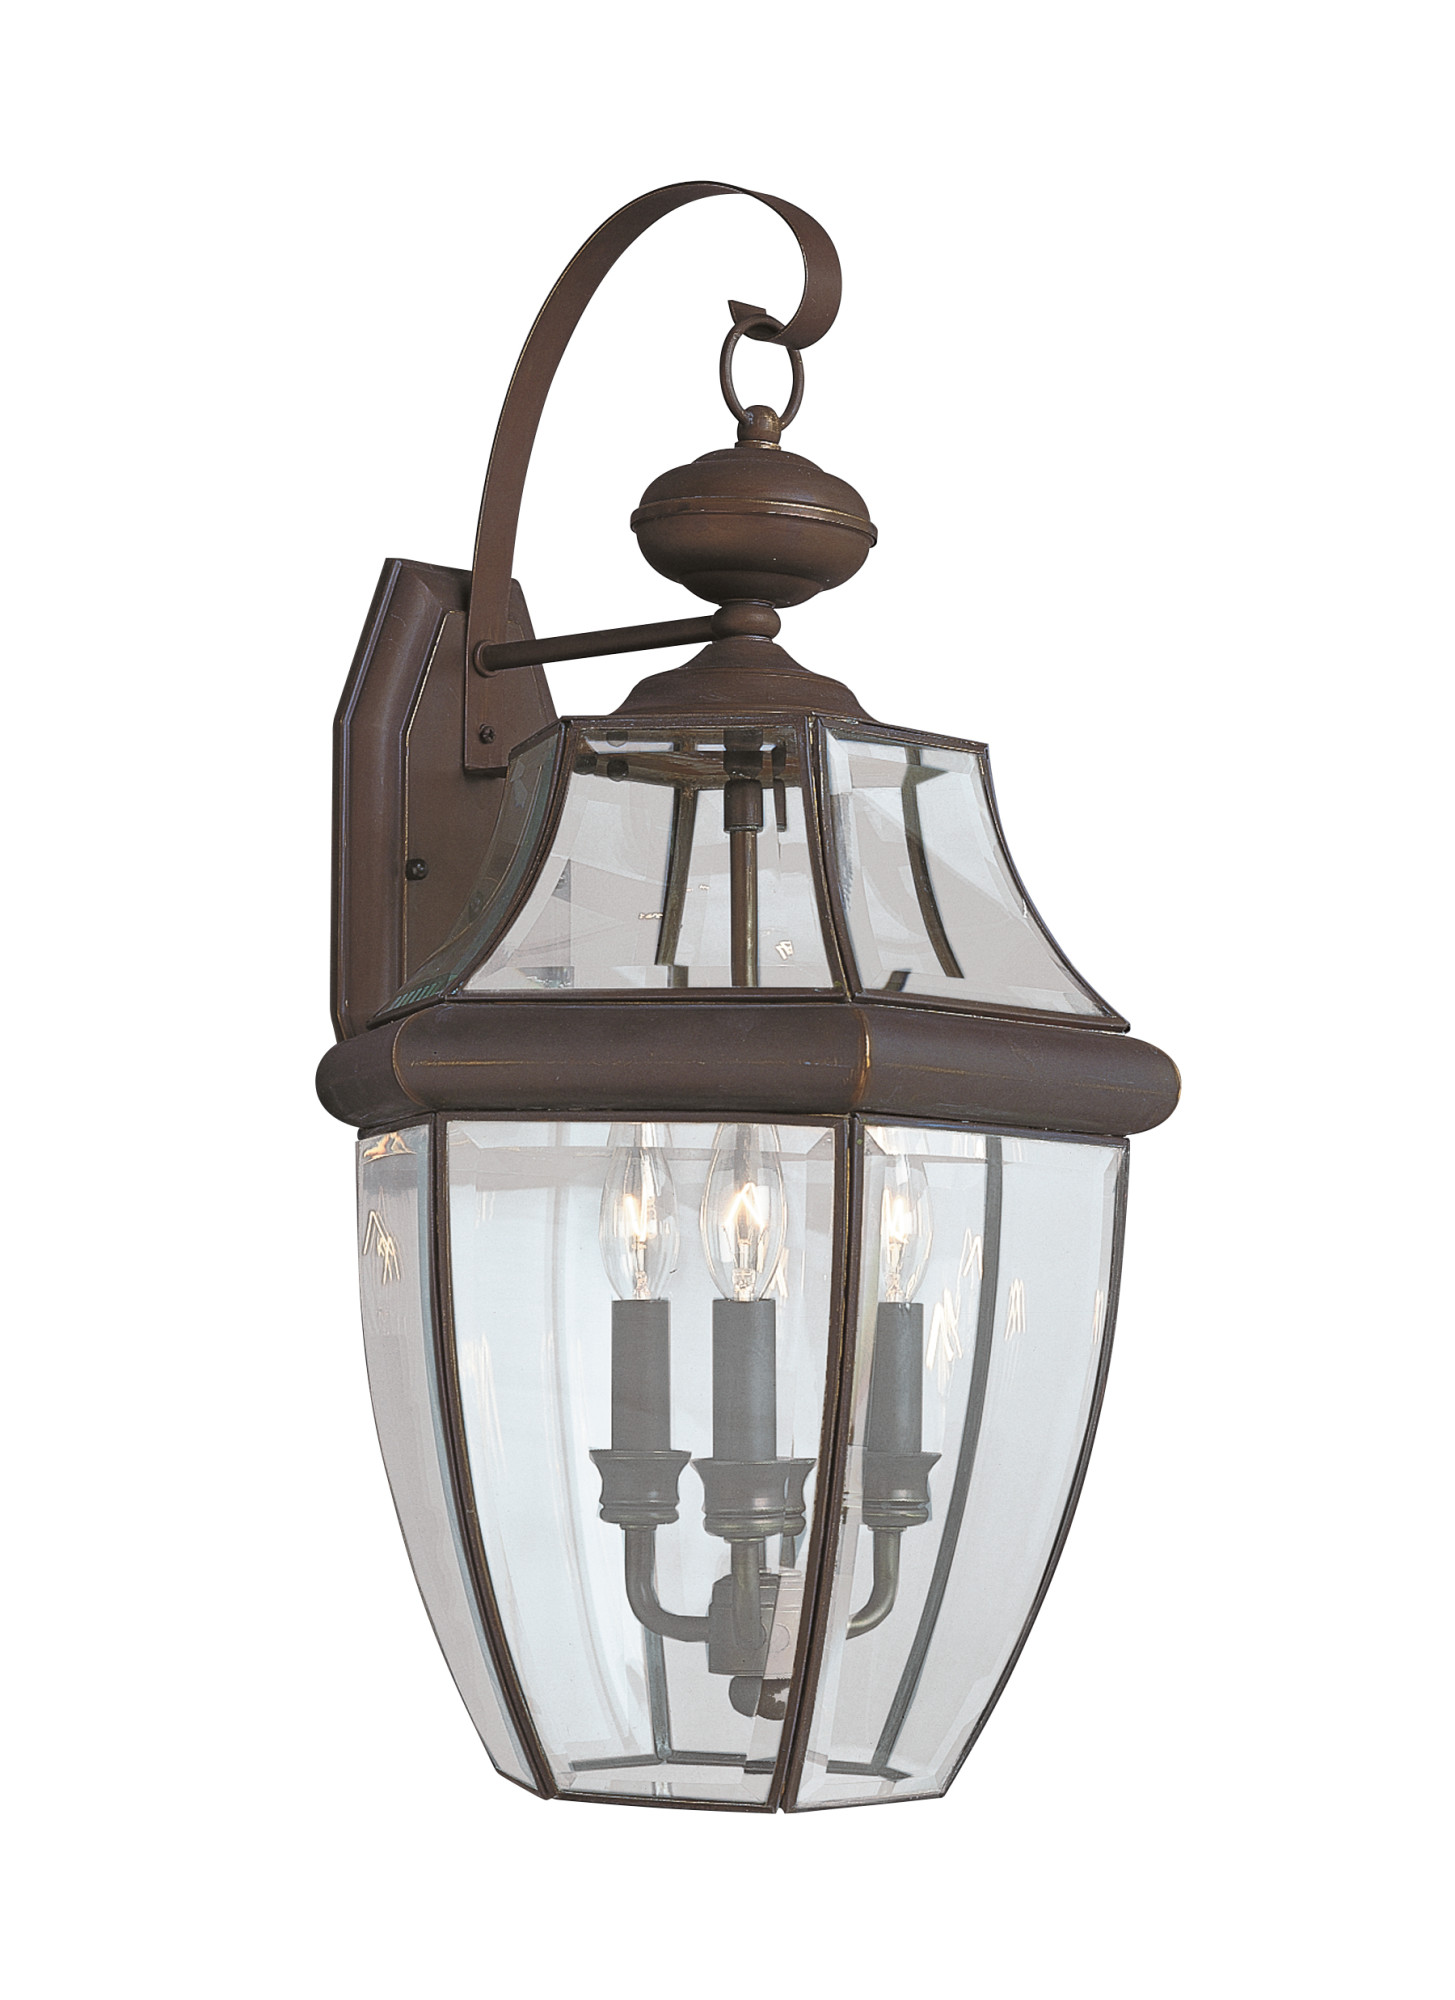 Sea Gull Lighting 8040 Lancaster 3 Light Outdoor Lantern Wall Sconce by Sea Gull Lighting